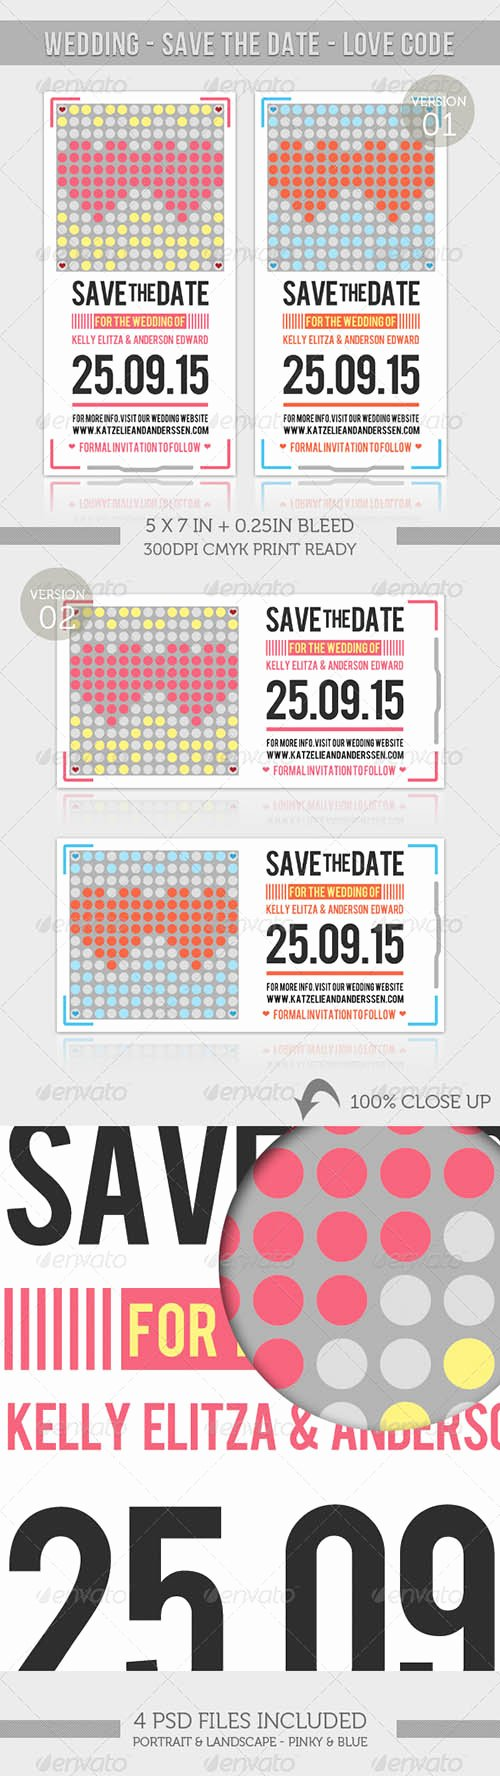 Wedding Save the Date Love Code Herogfx